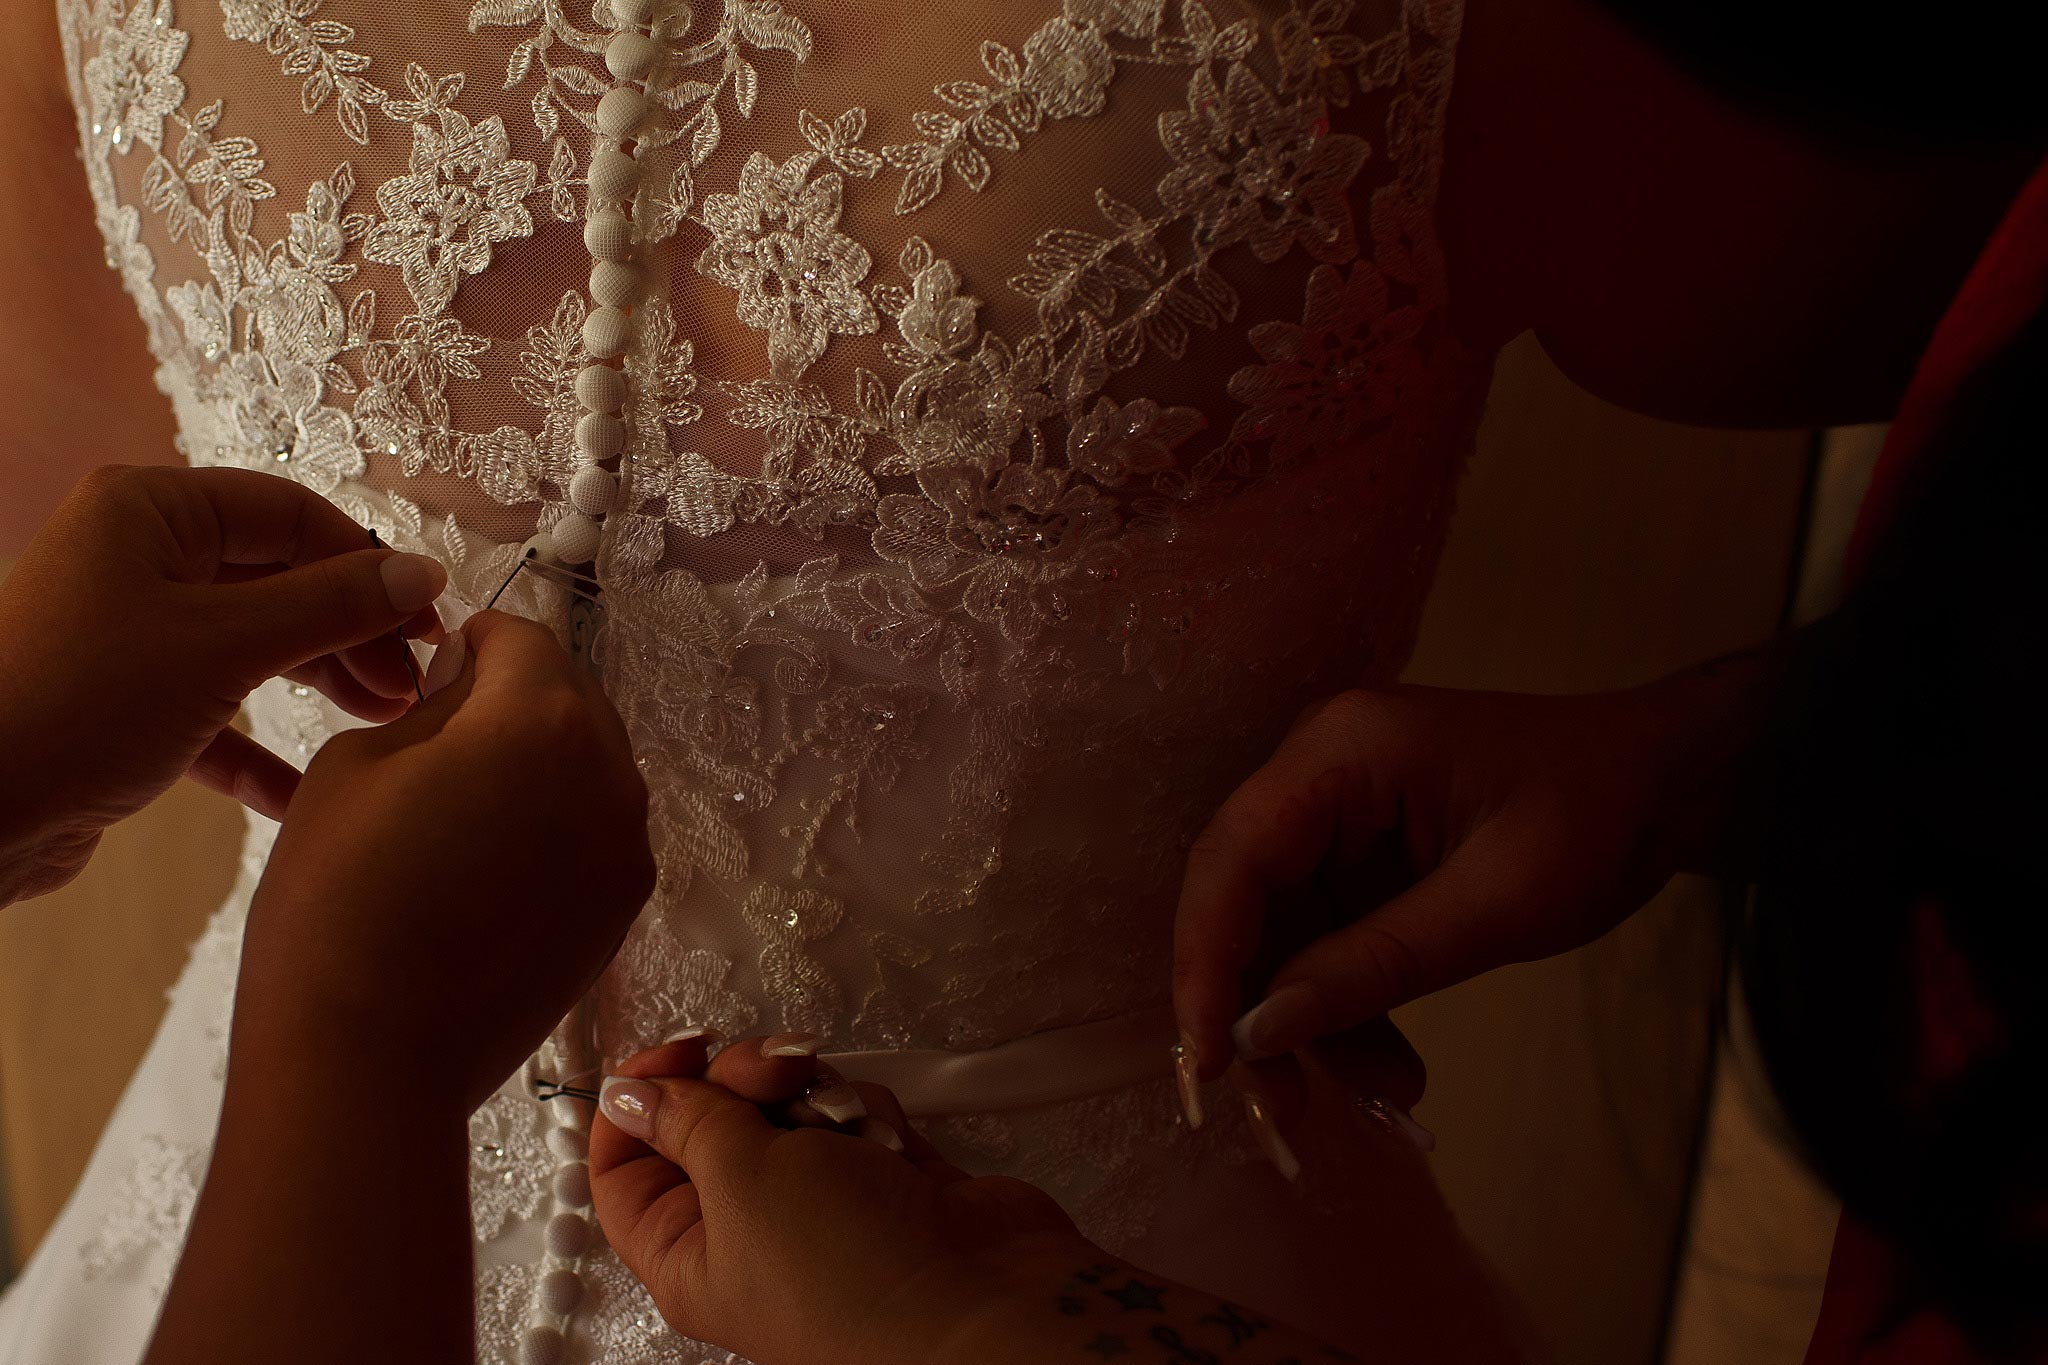 Close up photograph of hands fastening a brides dress